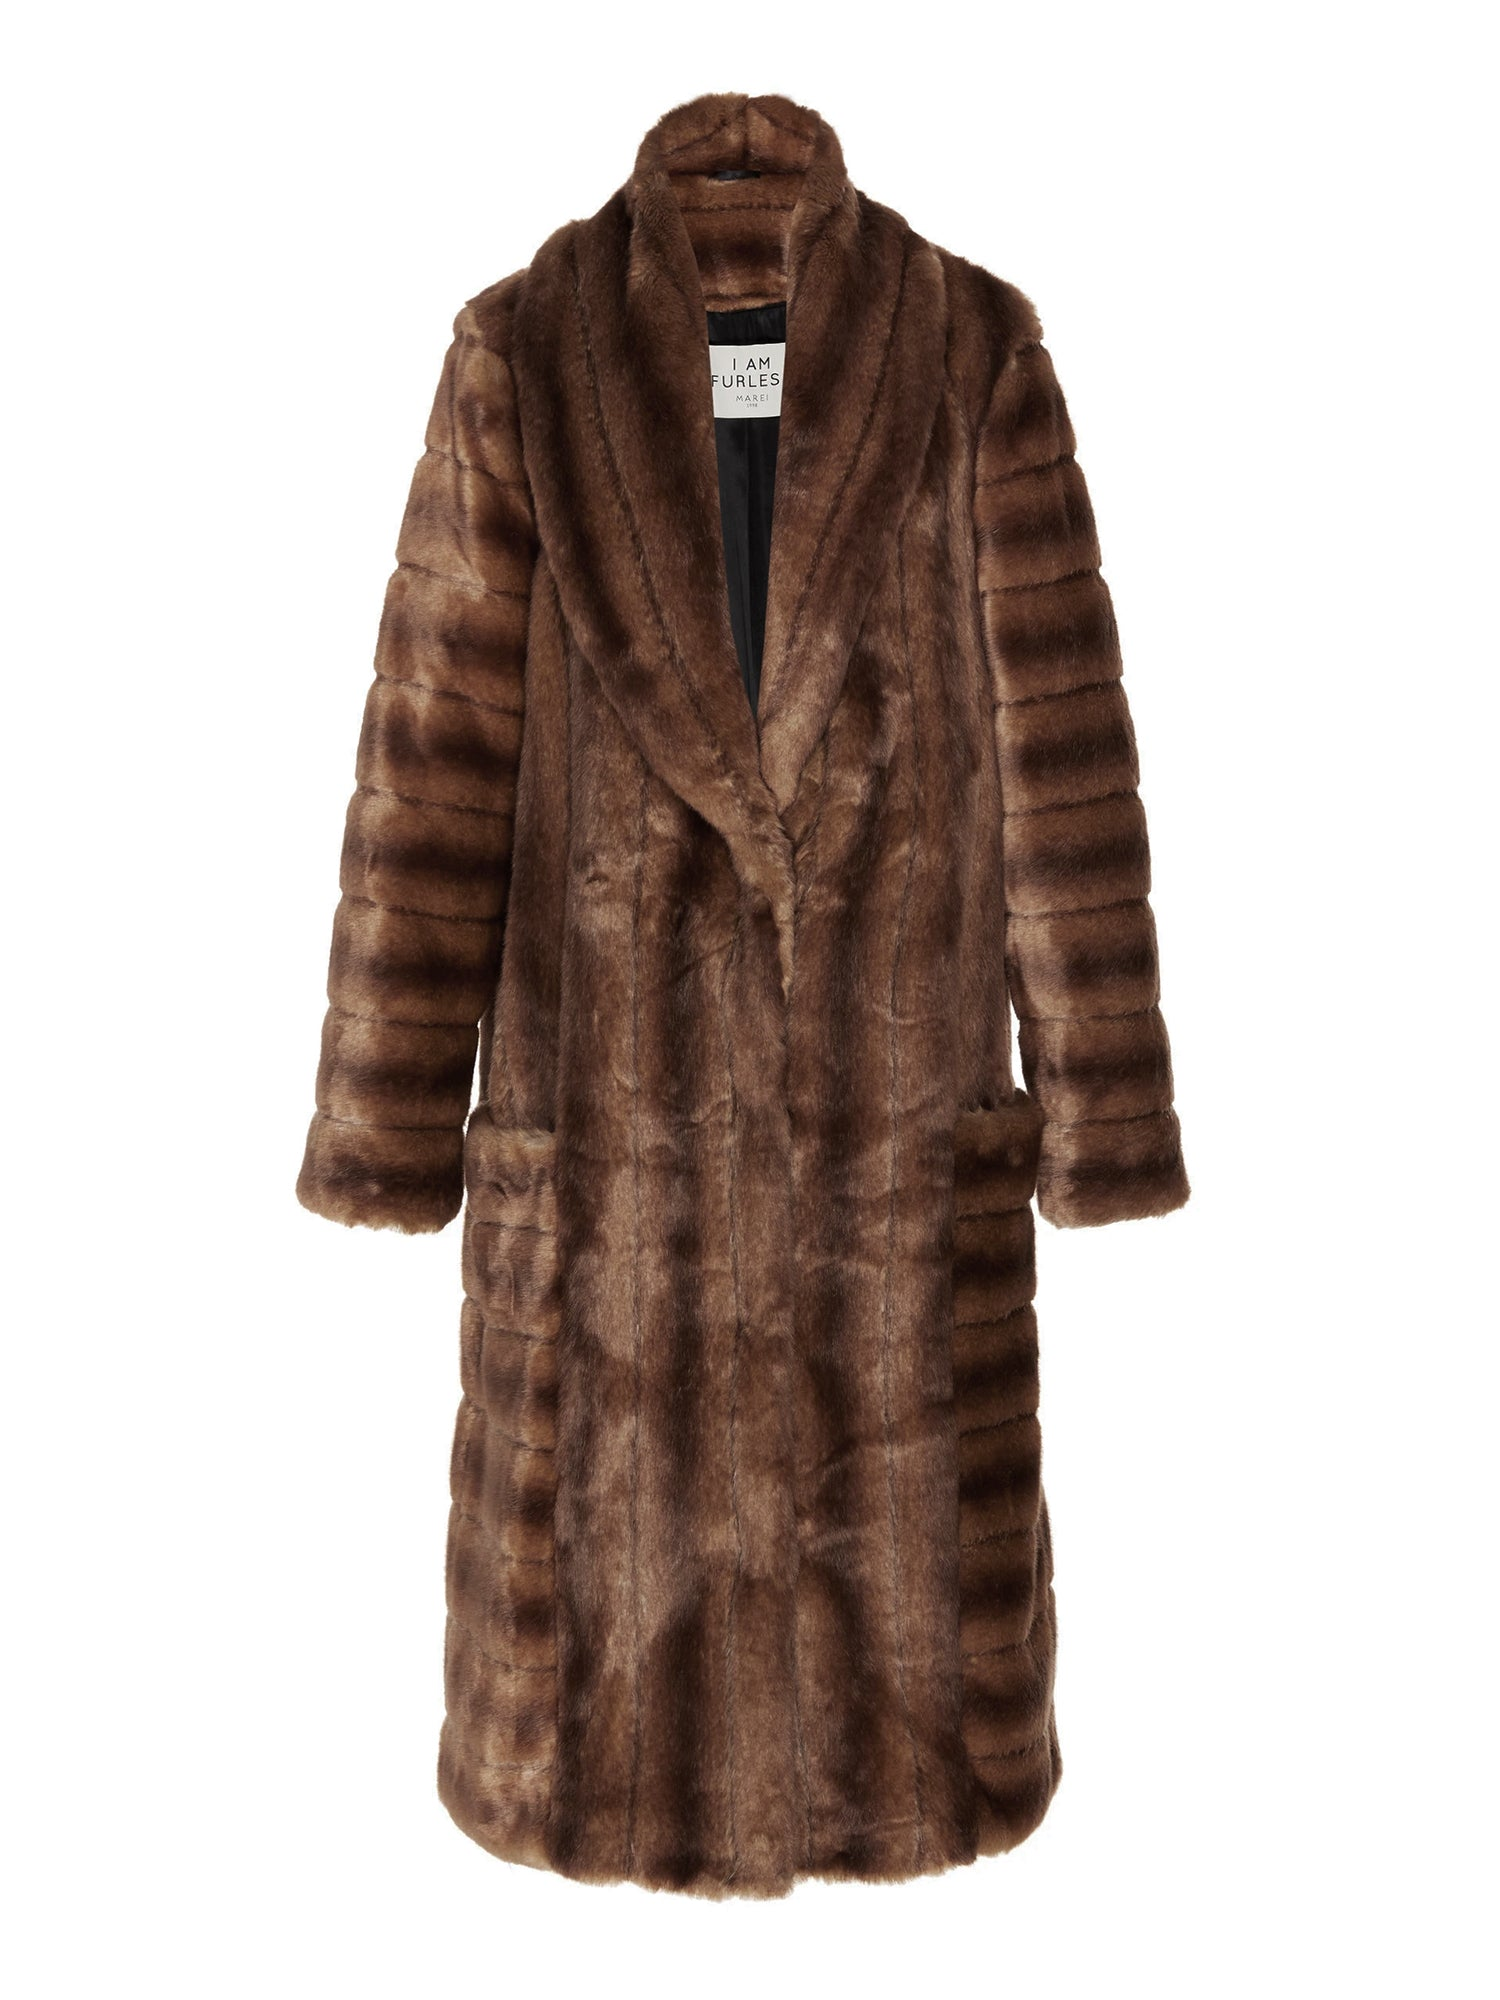 A Packshot Of Marei1998's Timeless Echinacea Long Faux Fur Coat In Classic Brown Color. Featuring Oversized Silhouette And Wide Shawl Neckline. Investment Piece / Winter Essential. Front View. Resort 2020 Collection - Furless Friendship.